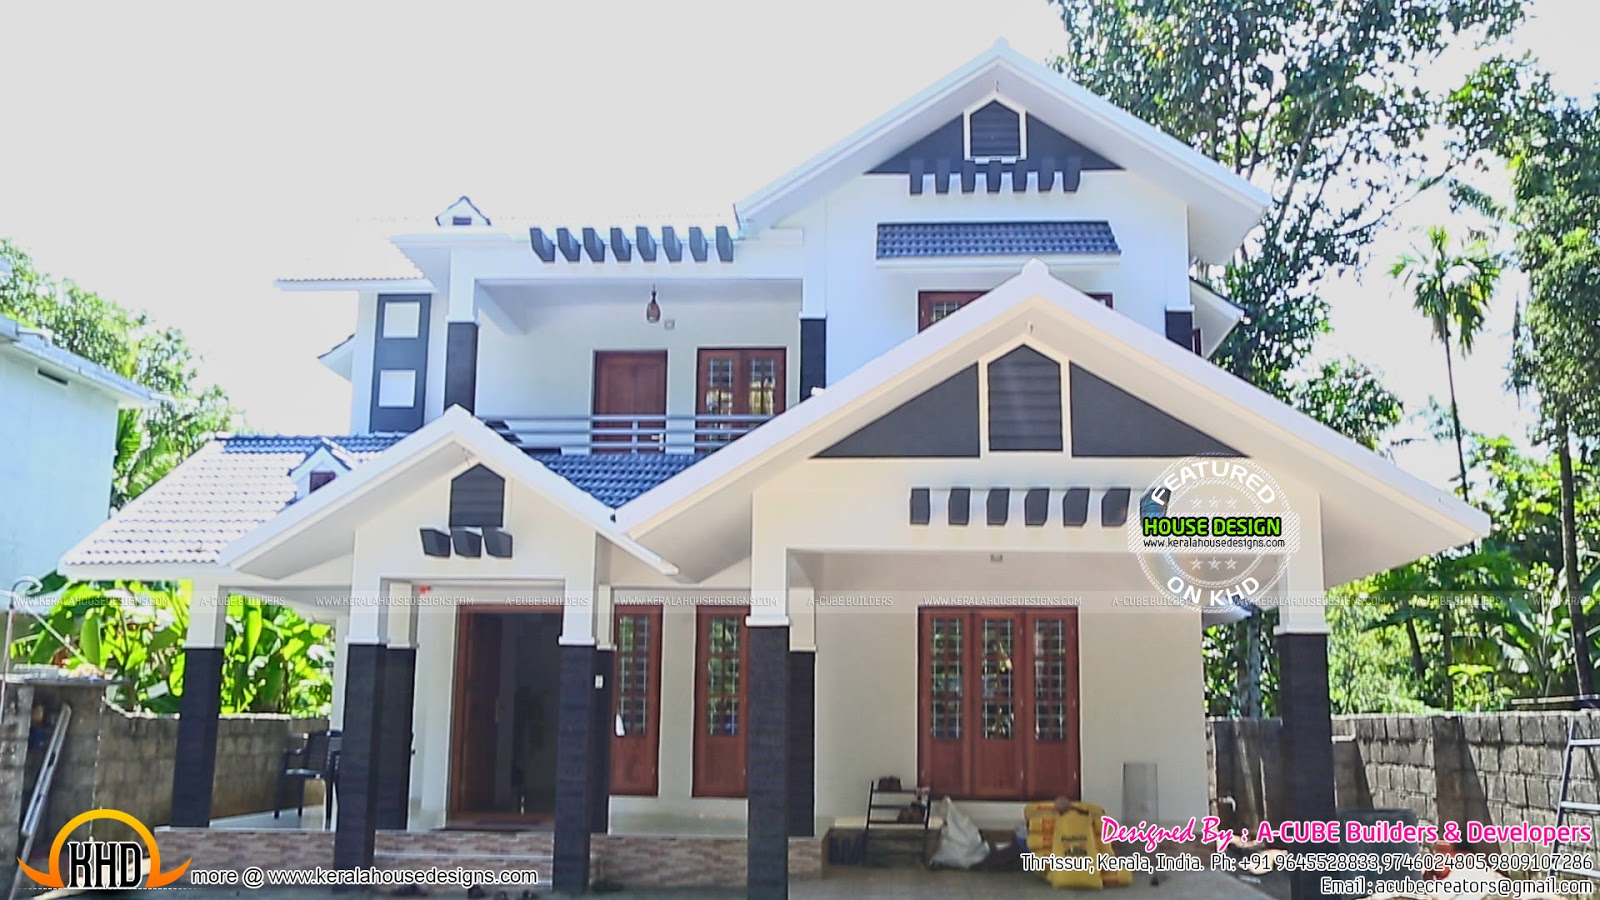 New house plans for 2016 starts here kerala home design for New house design photos